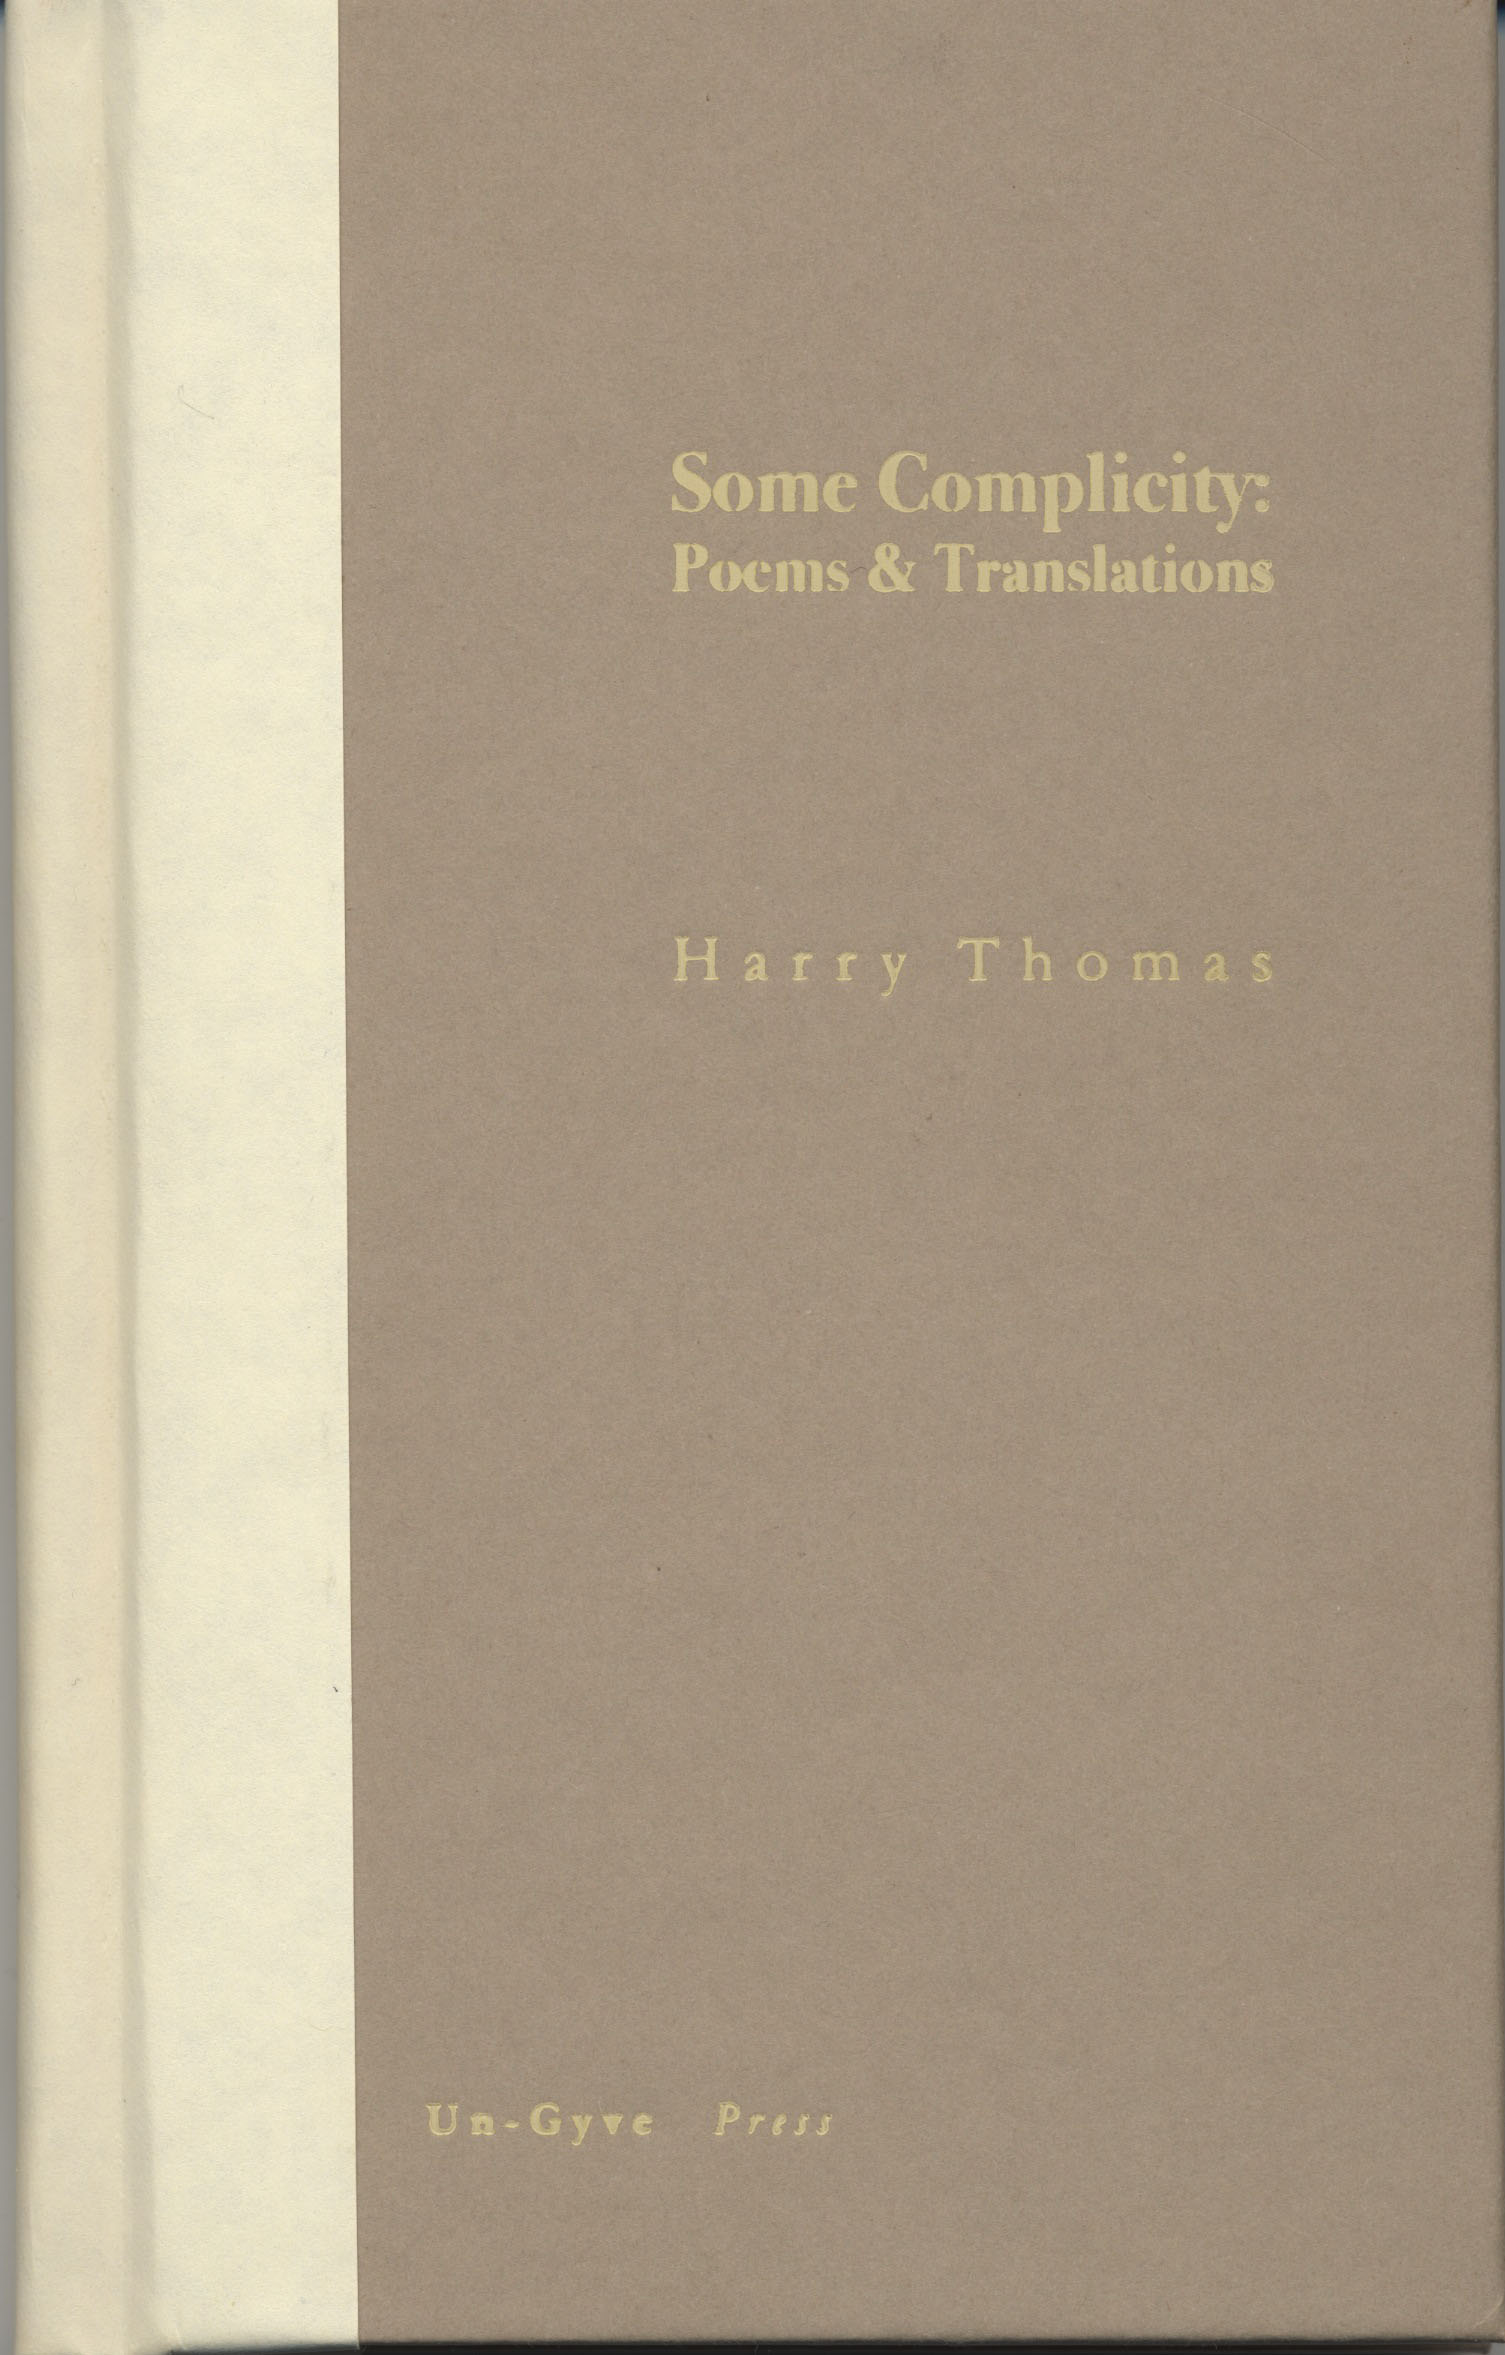 "BOSTON Un-Gyve Press Publishes Some Complicity: Poems and Translations by Harry Thomas; Harry Thomas is the author of May This Be (Jackdaw Press 2001); the translator of Joseph Brodsky's ""Gorbunov and Gorchakov"" (To Urania, Farrar, Straus & Giroux 1987); and the editor of Thomas Hardy: Selected Poems (Penguin 1993) as well as of Montale in English (translations by various hands, Penguin 2002). His critical work includes Berryman's Understanding (Northeastern 1988) Some Complicity, a hand bound hardcover volume of 83 pages, 28 poems and 20 translations, available November 1, ISBN: 978-0-9829198-2-8. (PRNewsFoto/Un-Gyve Limited) ( PRNewsFoto/UN-GYVE LIMITED )"